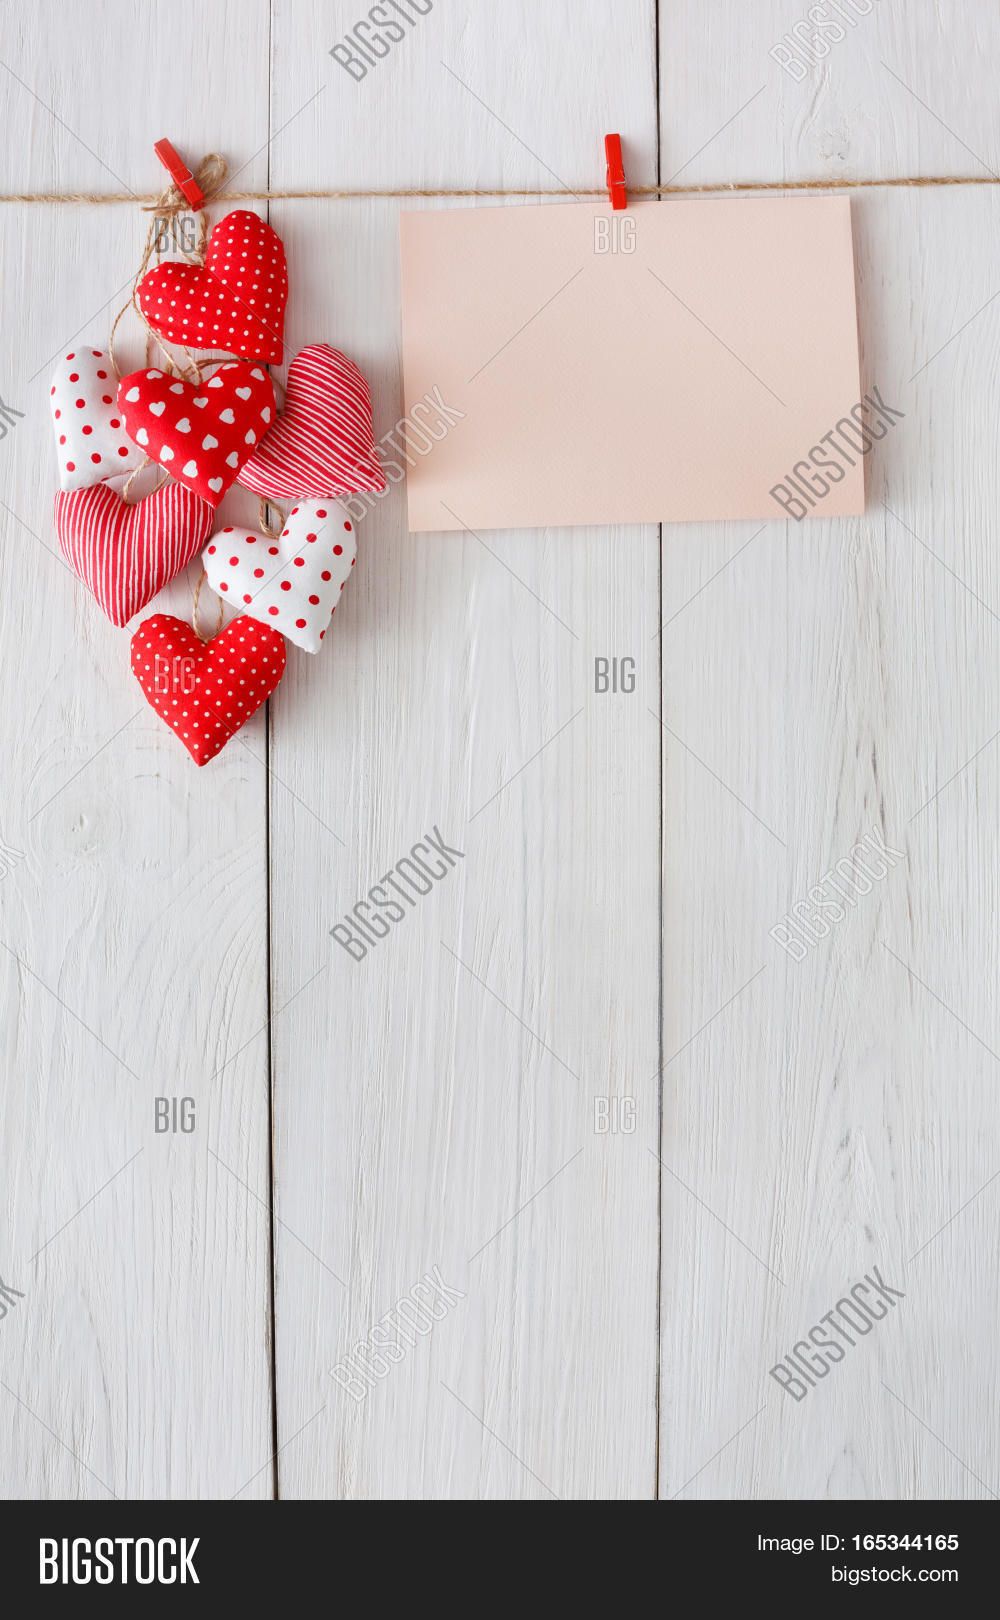 Valentine Background With Sewed Pillow Diy Handmade Hearts And Empty Greeting Card On Red Clothespins At